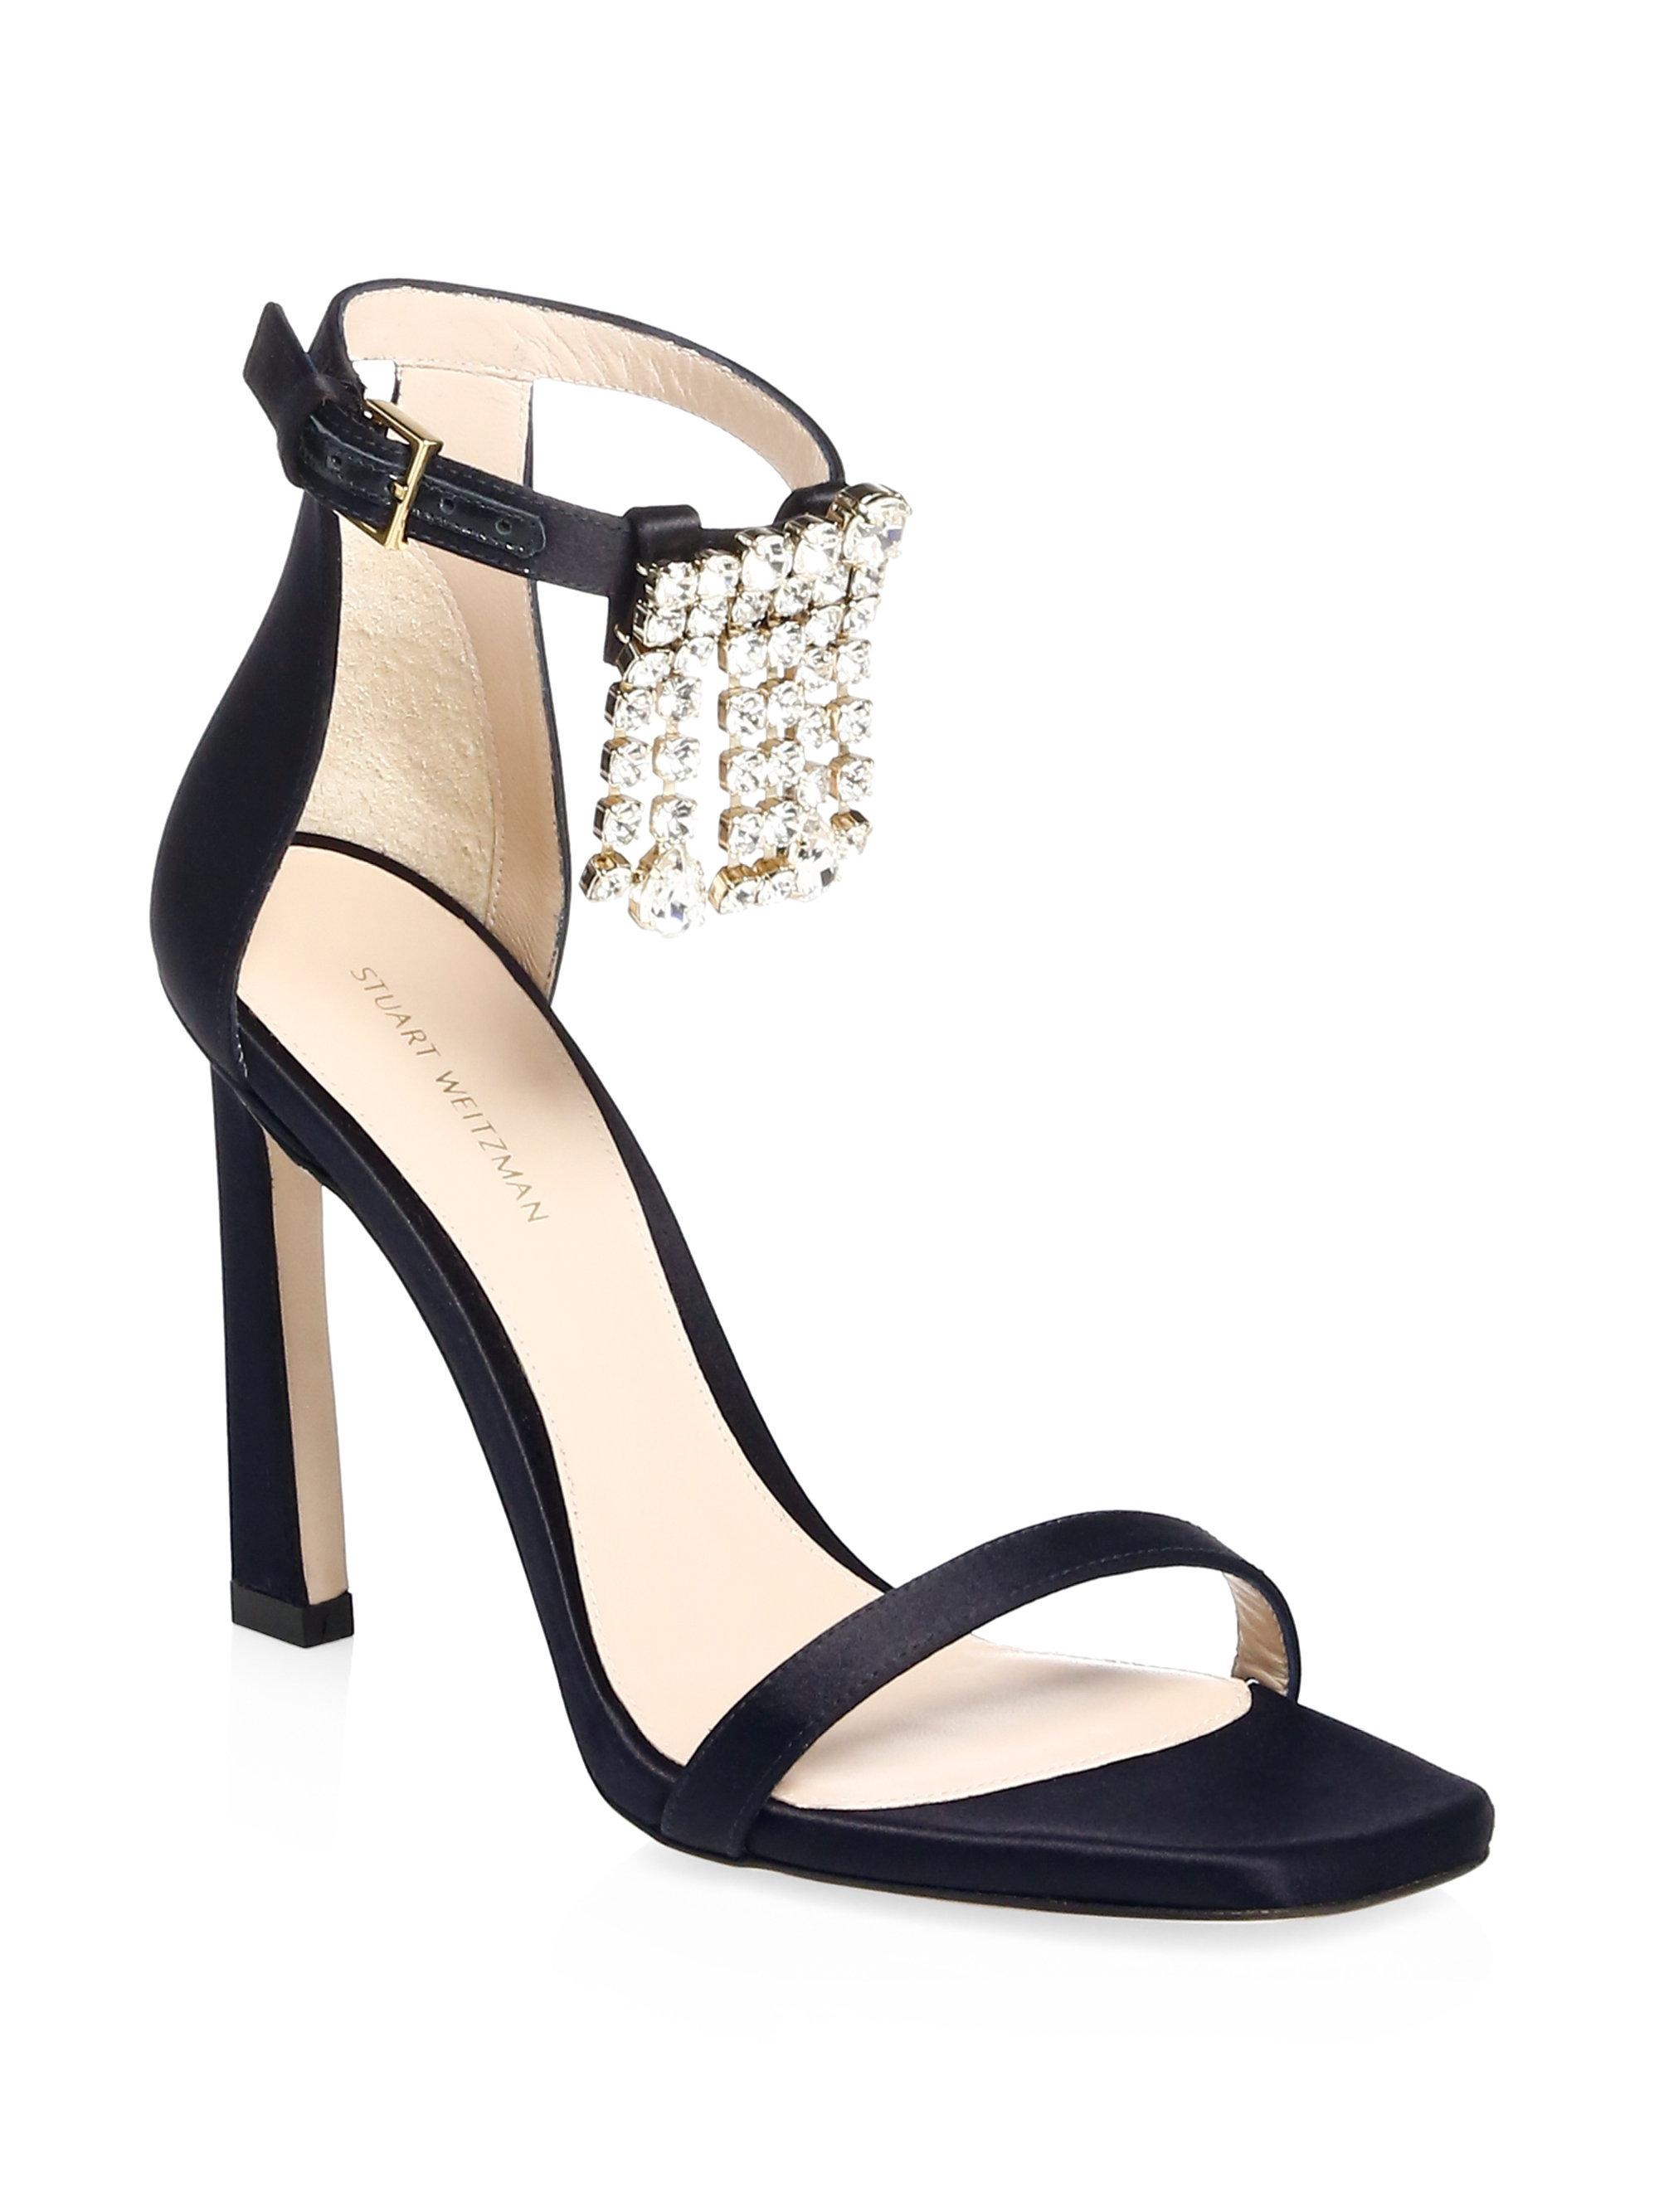 Clearance Professional Sale The Cheapest Stuart Weitzman Satin Embellished Fringed Sandals Cost Cheap Price jM2Sw0mL